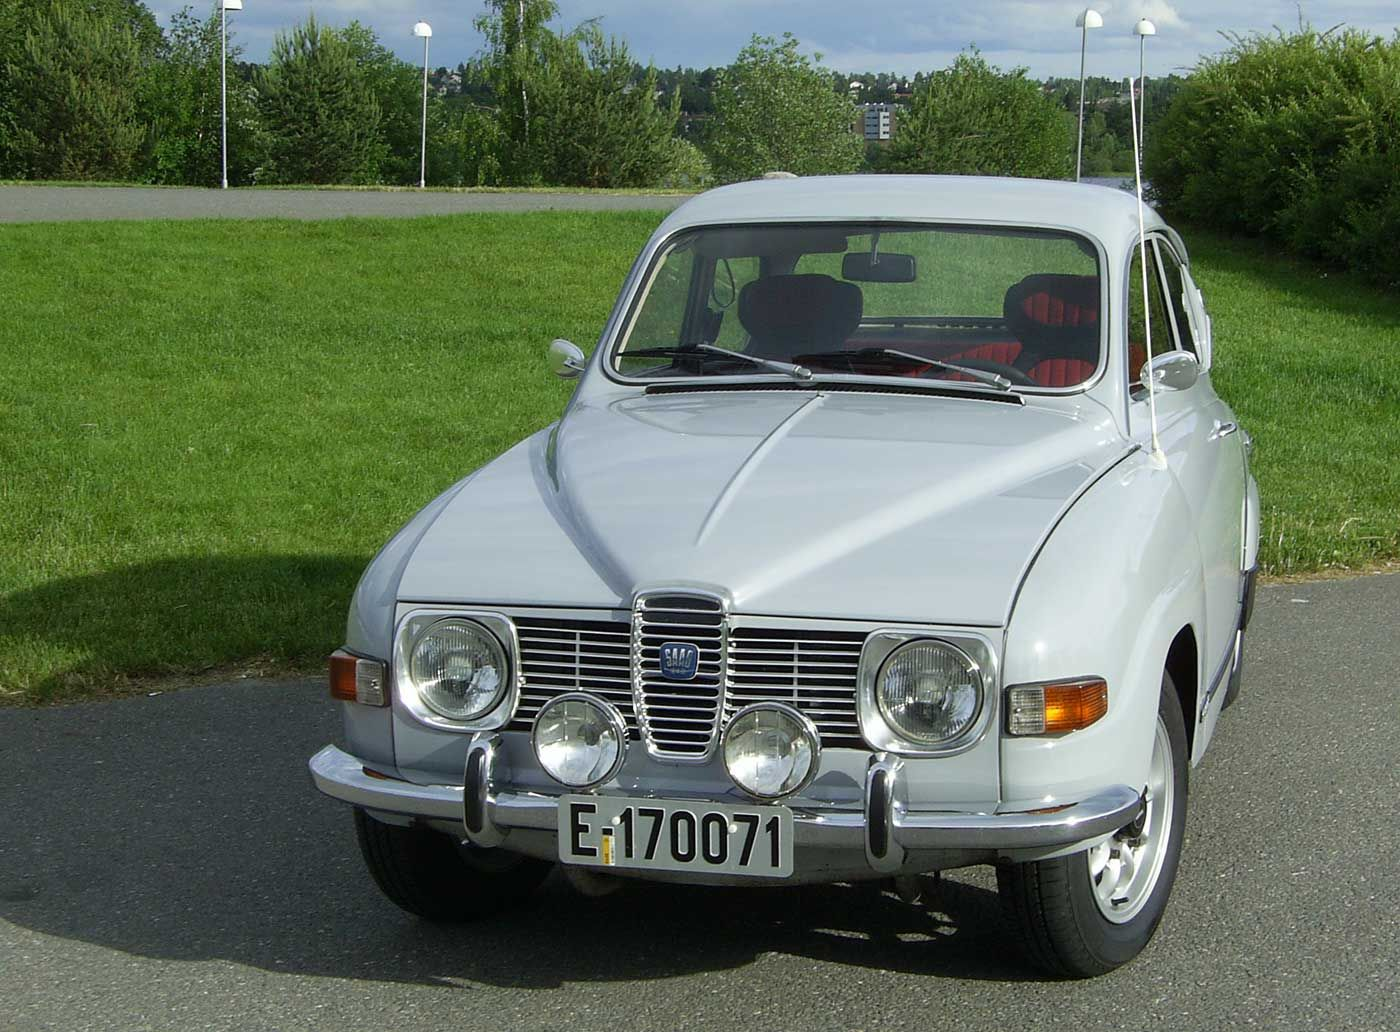 Rally-Tuned Saab Exceeds College Memories | Cars, Volvo and Saab ...